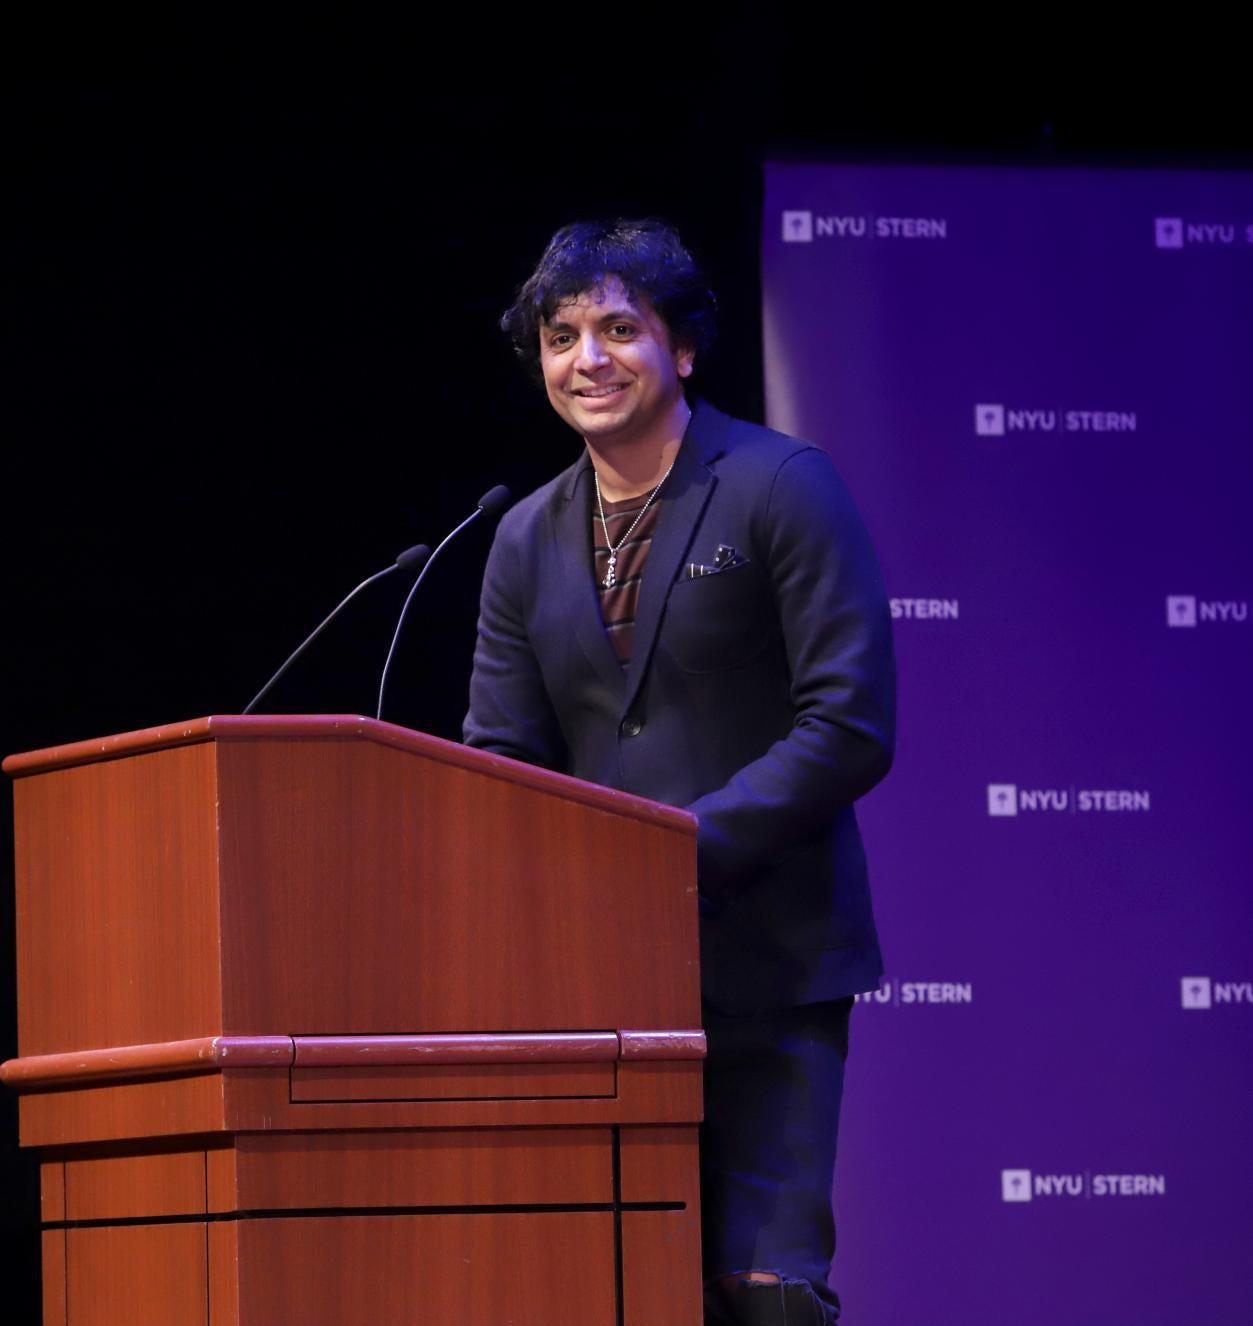 M. Night Shyamalan speaks at the 2019 Sani Lecture